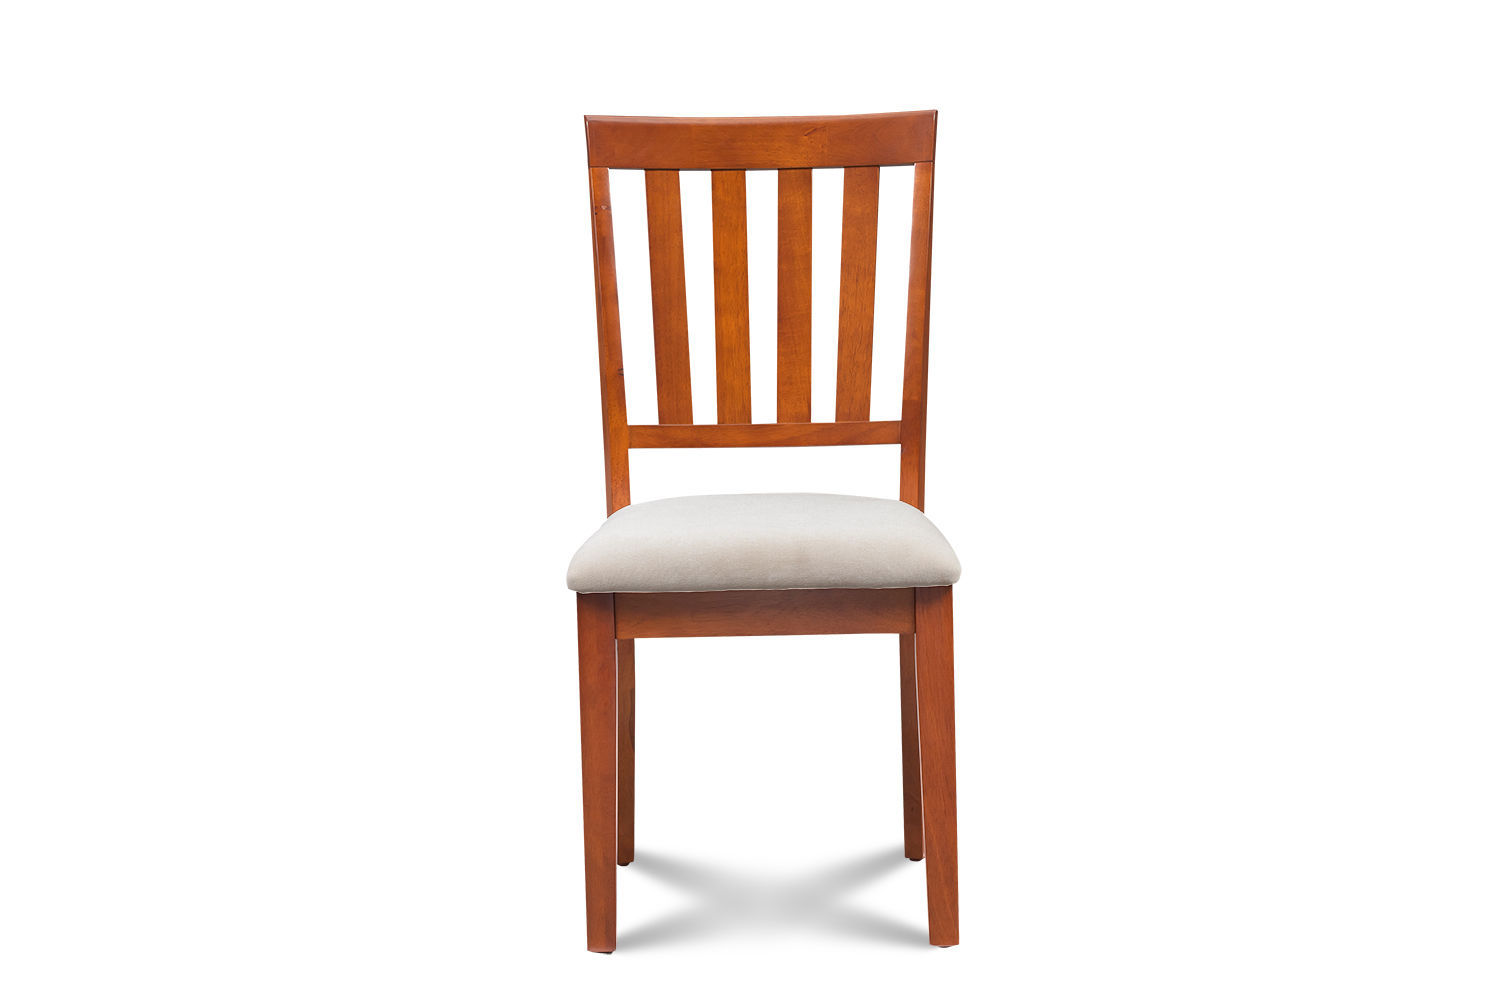 SET OF 4 MOCHA KITCHEN DINING CHAIRS WITH SOFT-PADDED SEAT